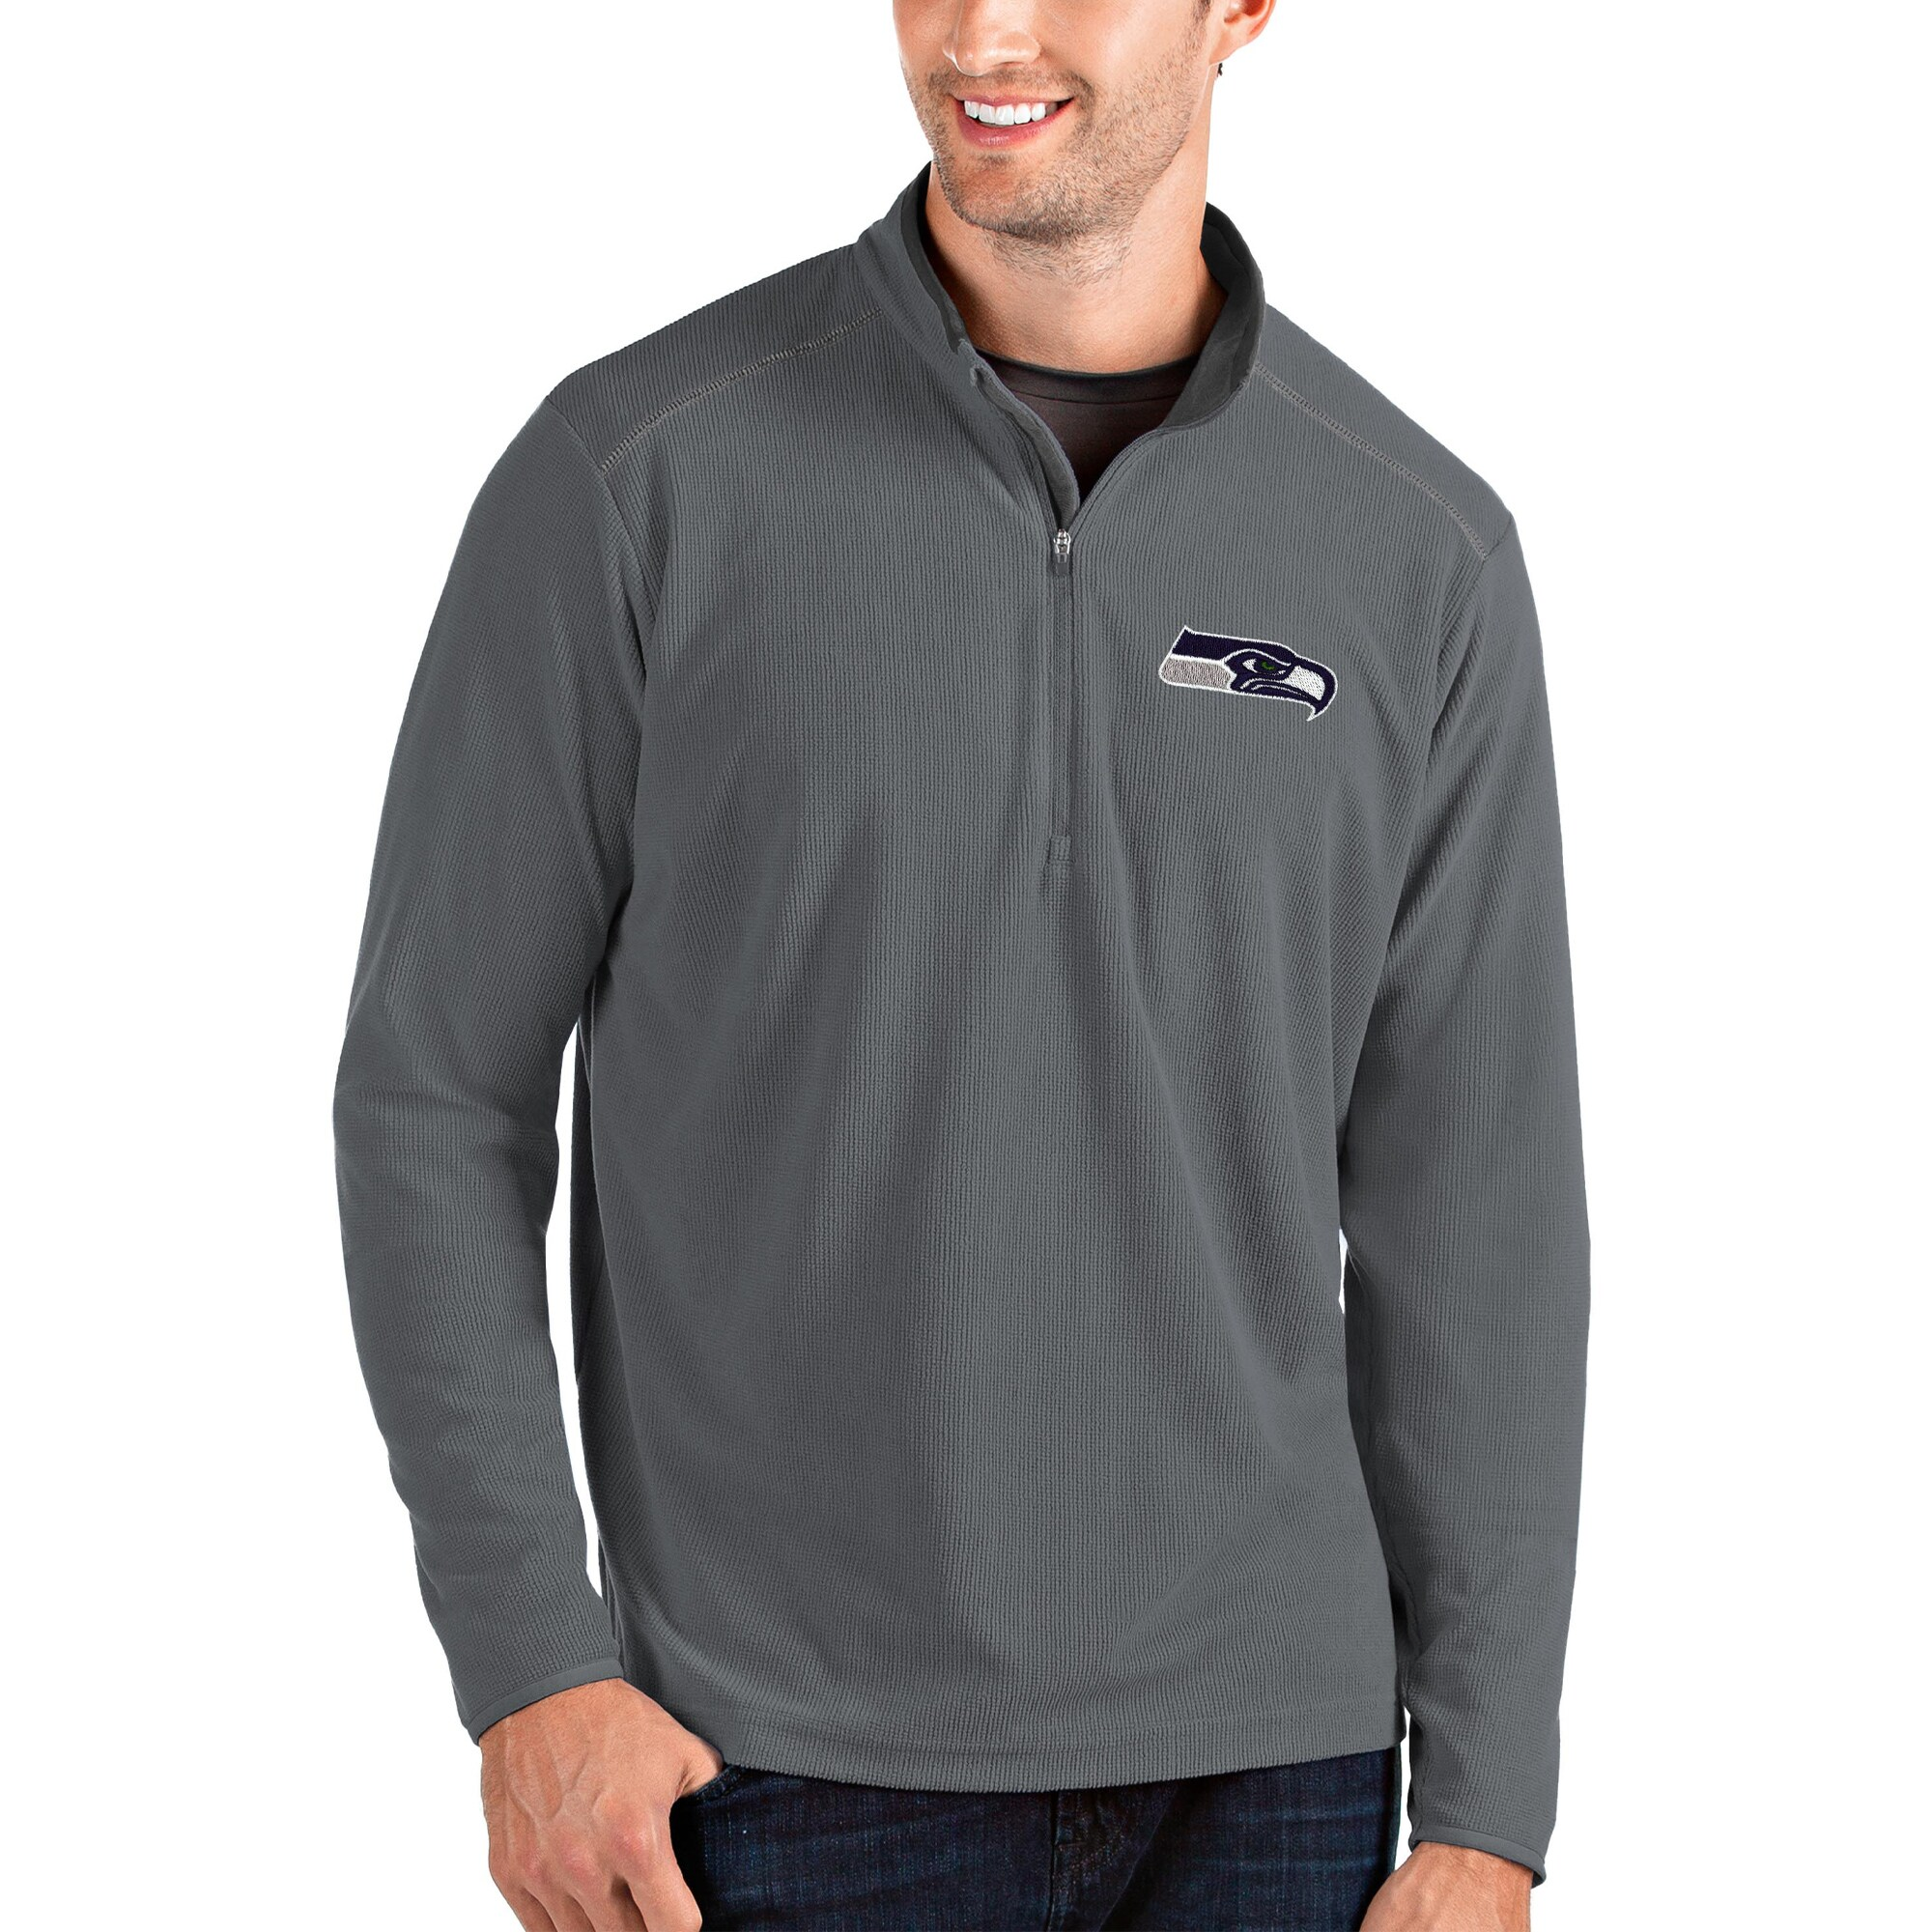 Seattle Seahawks Antigua Glacier Quarter-Zip Pullover Jacket - Gray/Gray